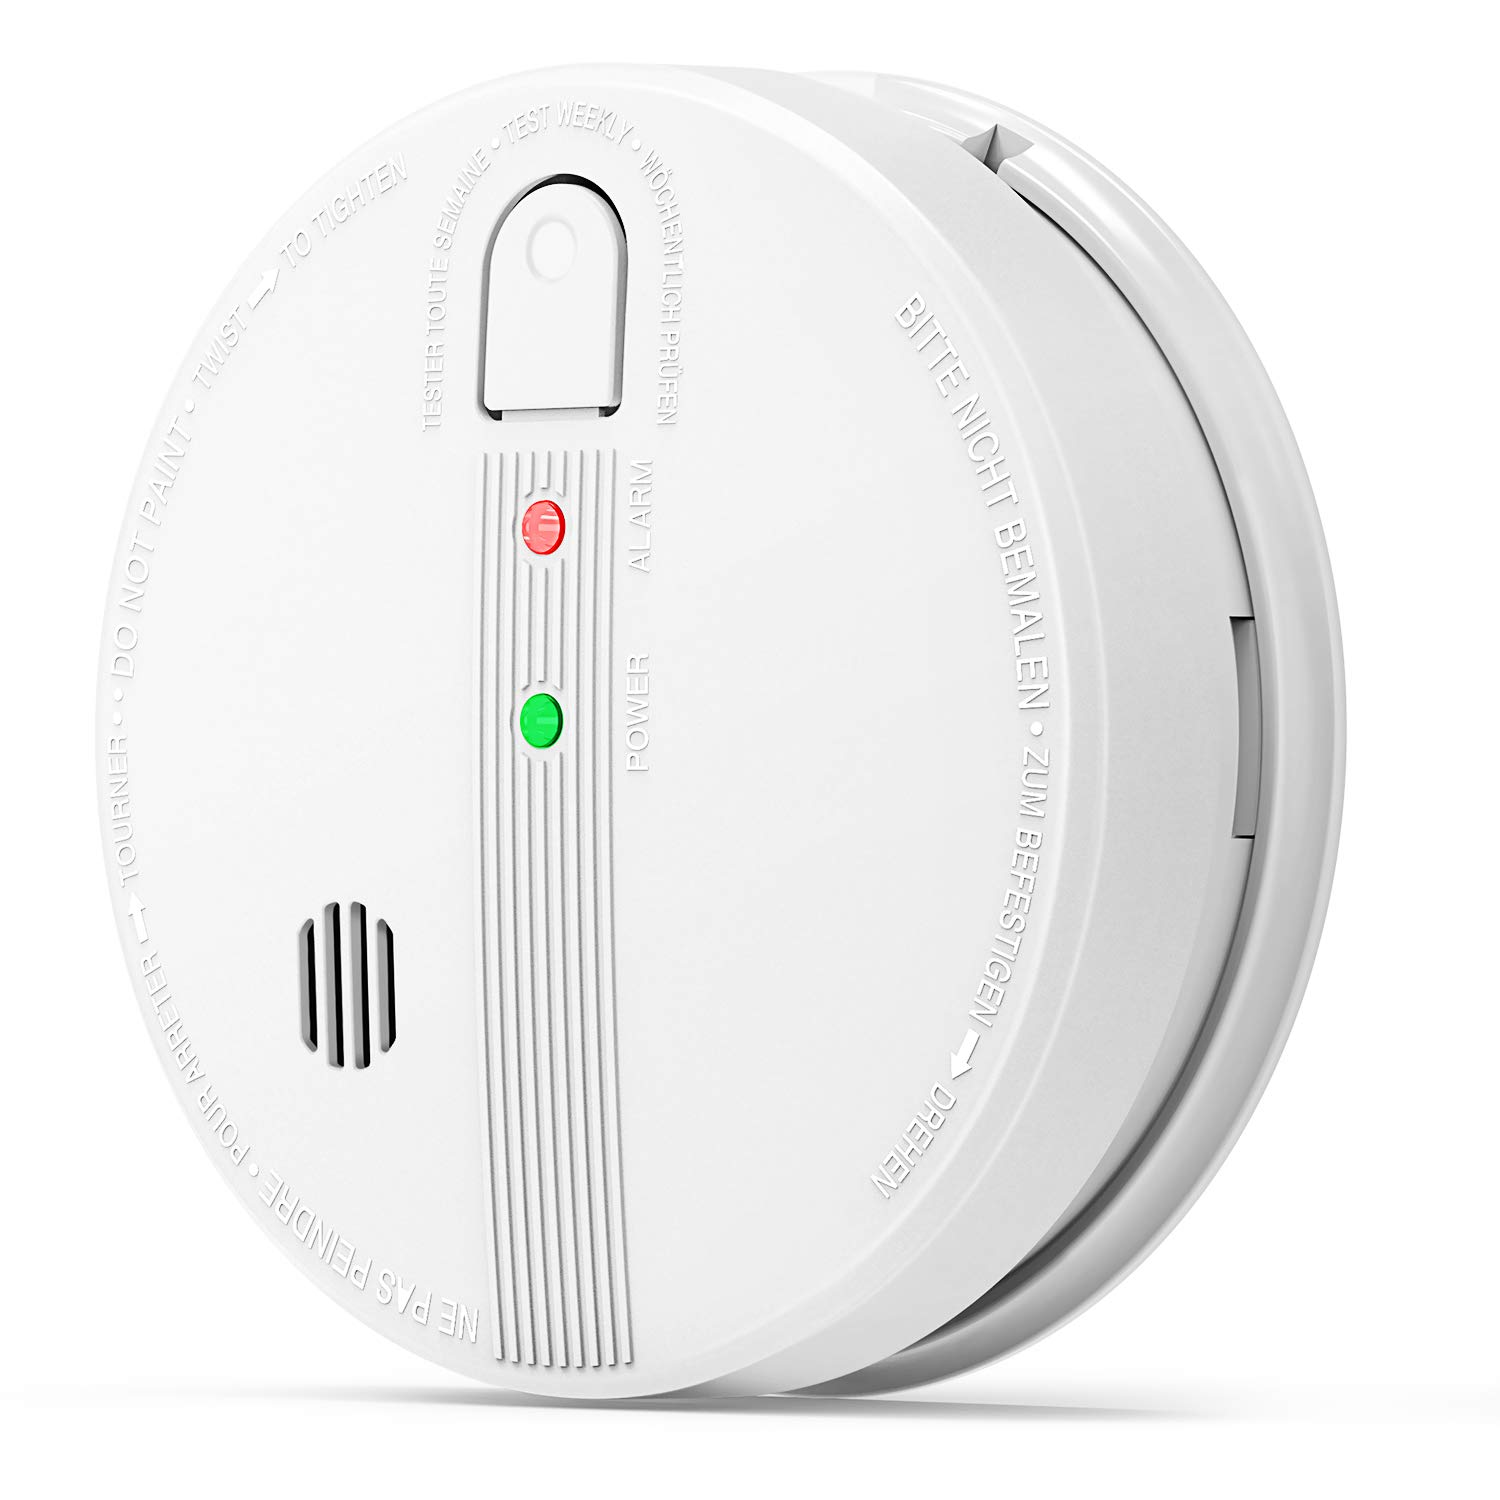 Smoke Detector, Photoelectric Sensor Smoke Alarm, 10 Years Safety Hardwired Fire Alarm with 9V Back up Battery, Red Flash Alarm and Green AC Power Indicator, Interconnect up to 12pcs